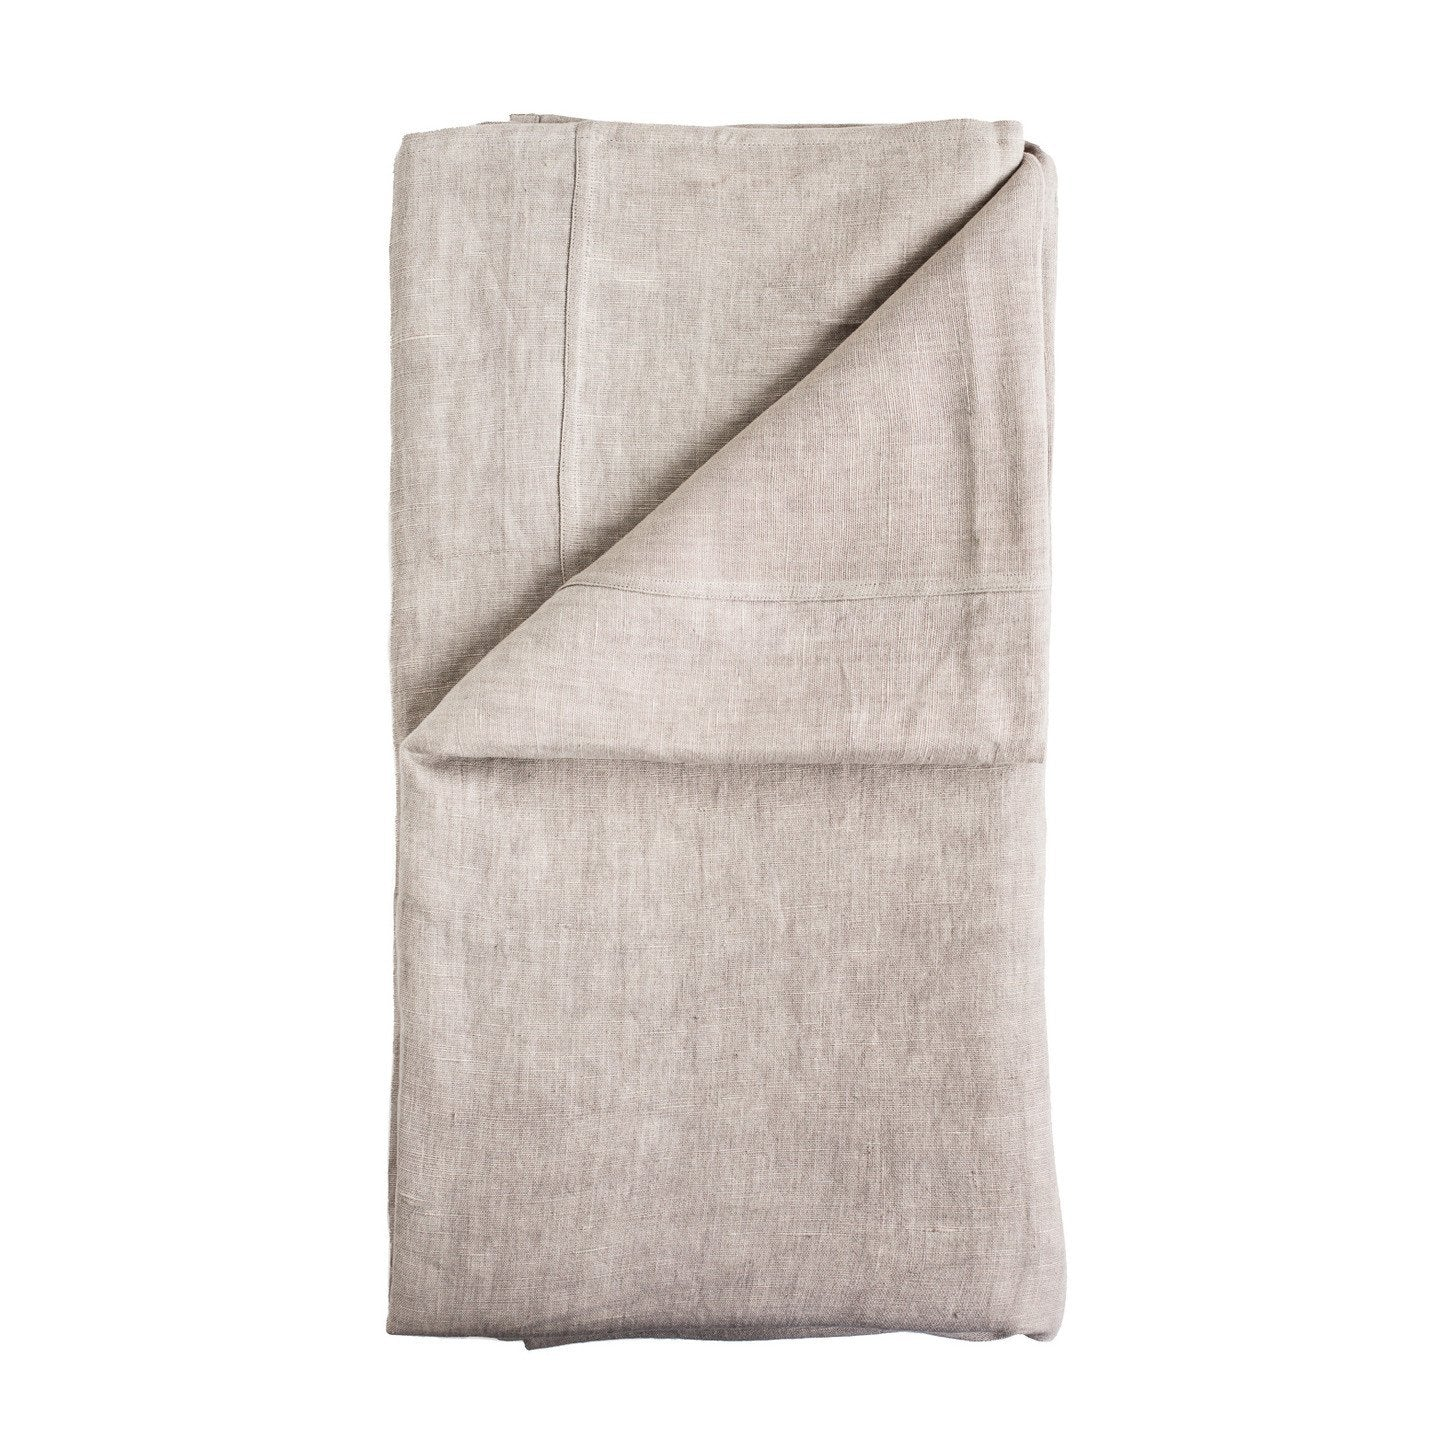 buy 100% Pre-washed Silver Grey Linen Bed Cover online